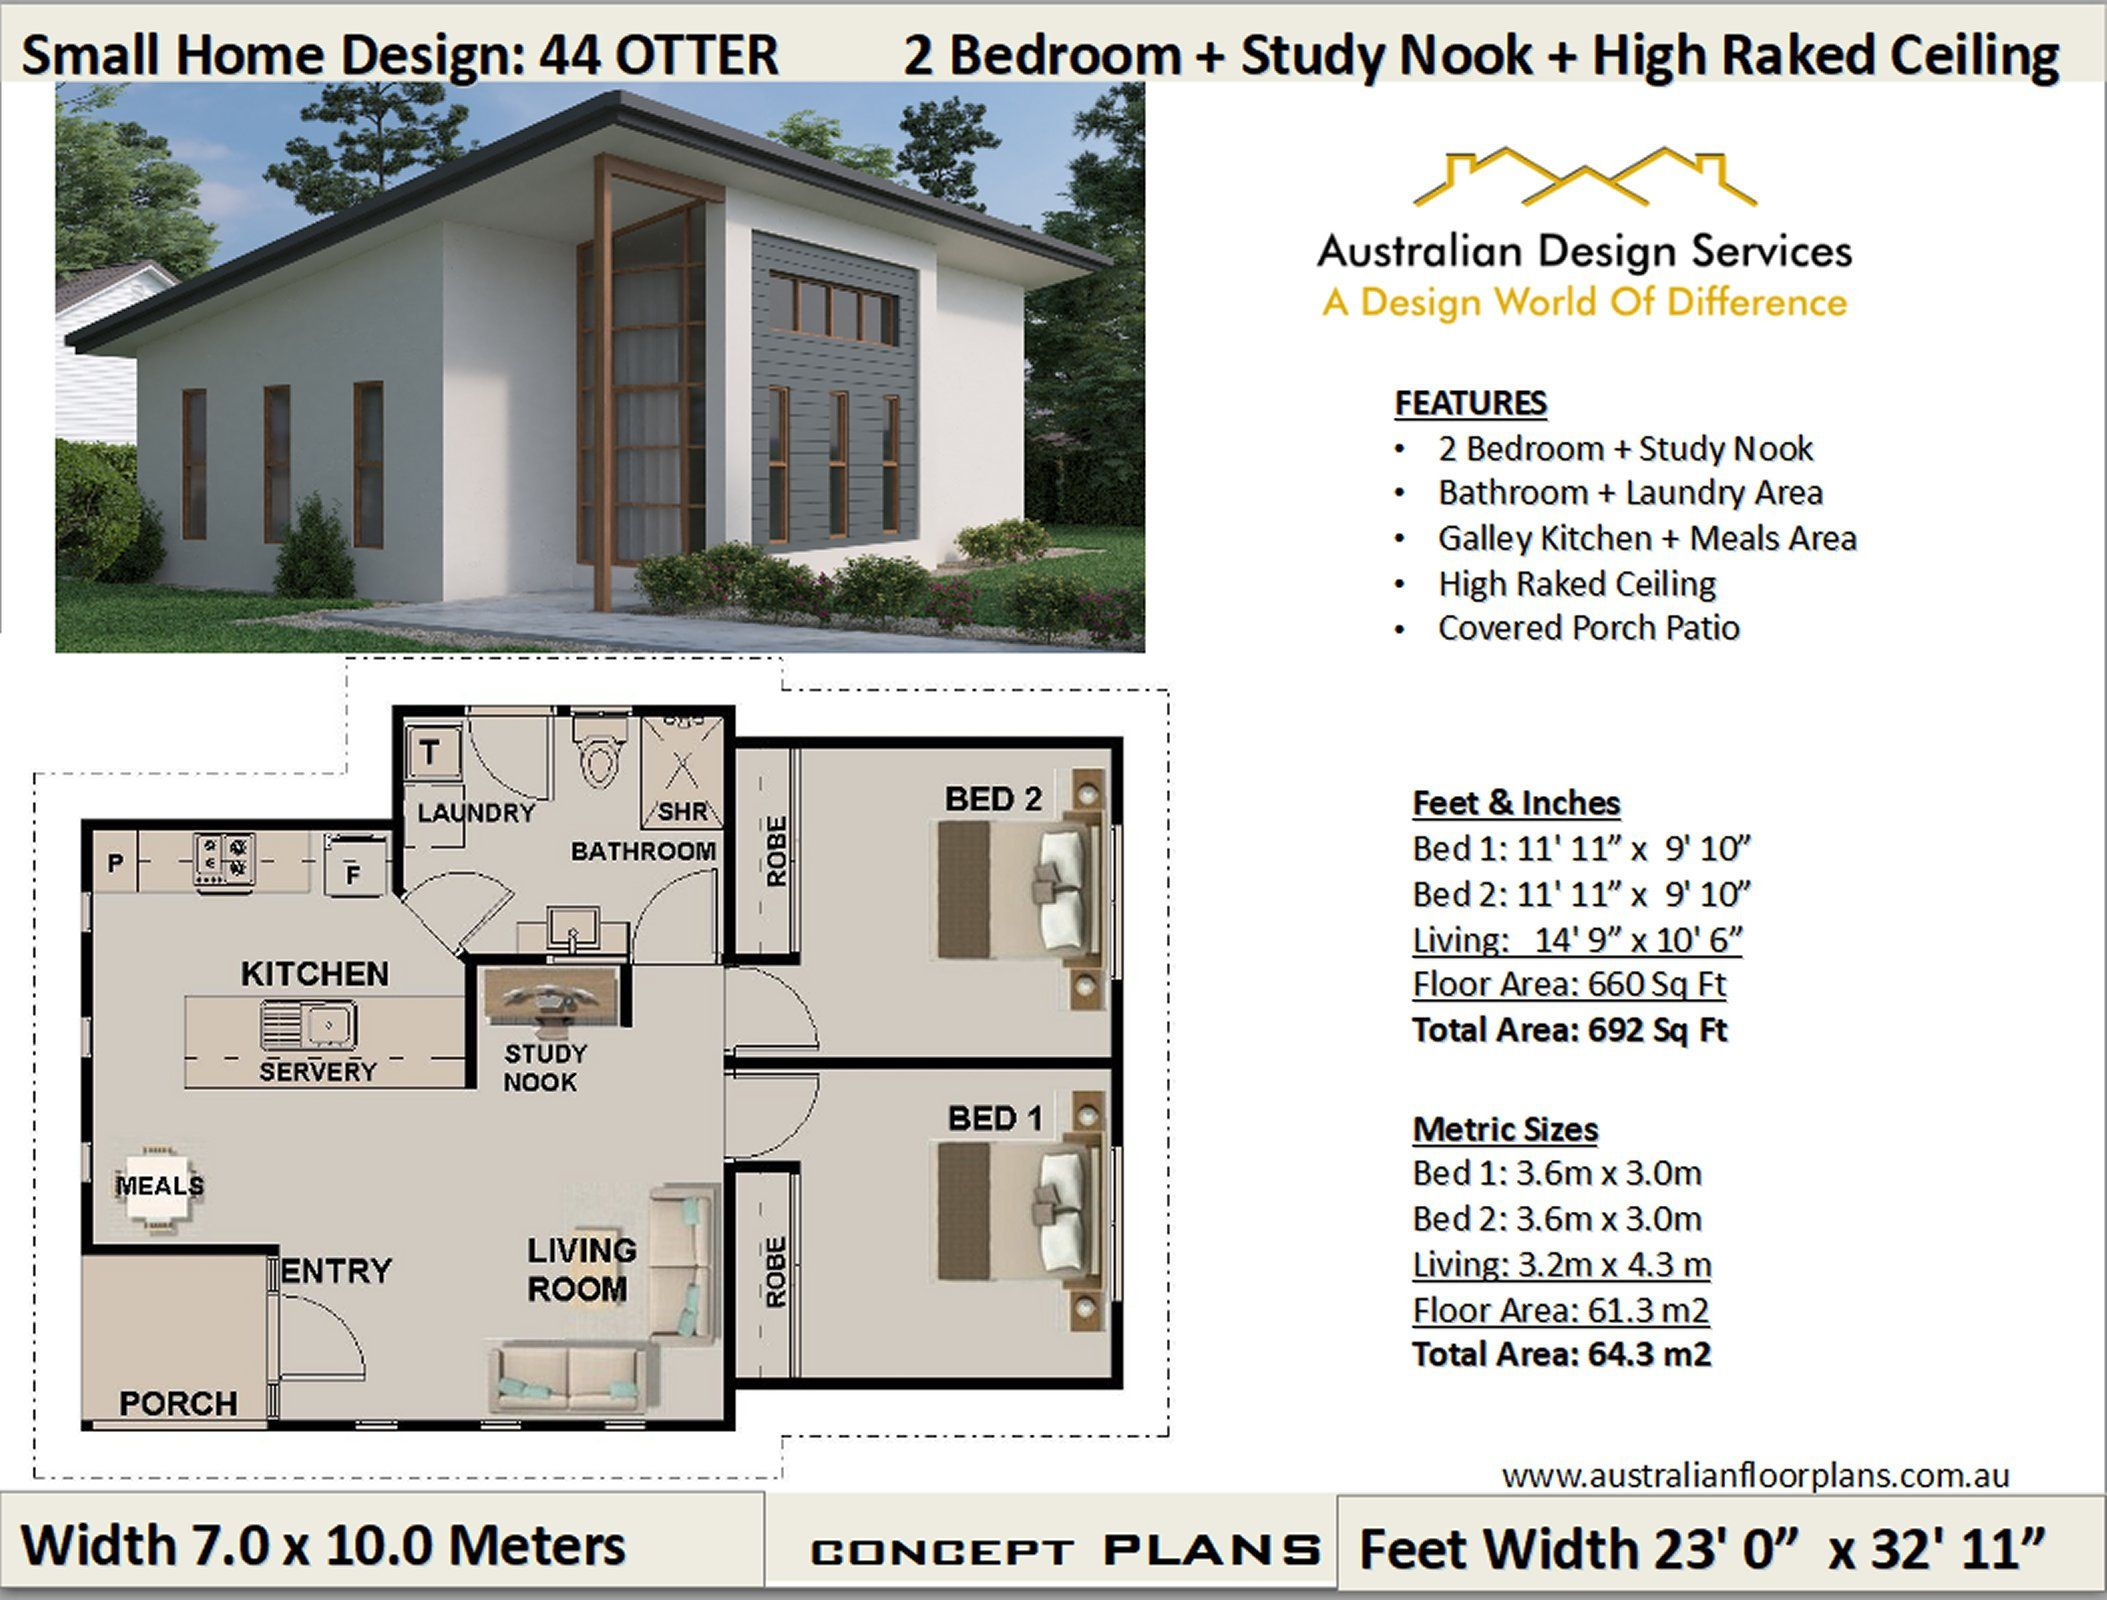 61m2 660sq Foot 2 Bedroom Study House Plan 44 Otter Concept House Plans For Sale House Plans For Sale Small House Plans Craftsman House Plans